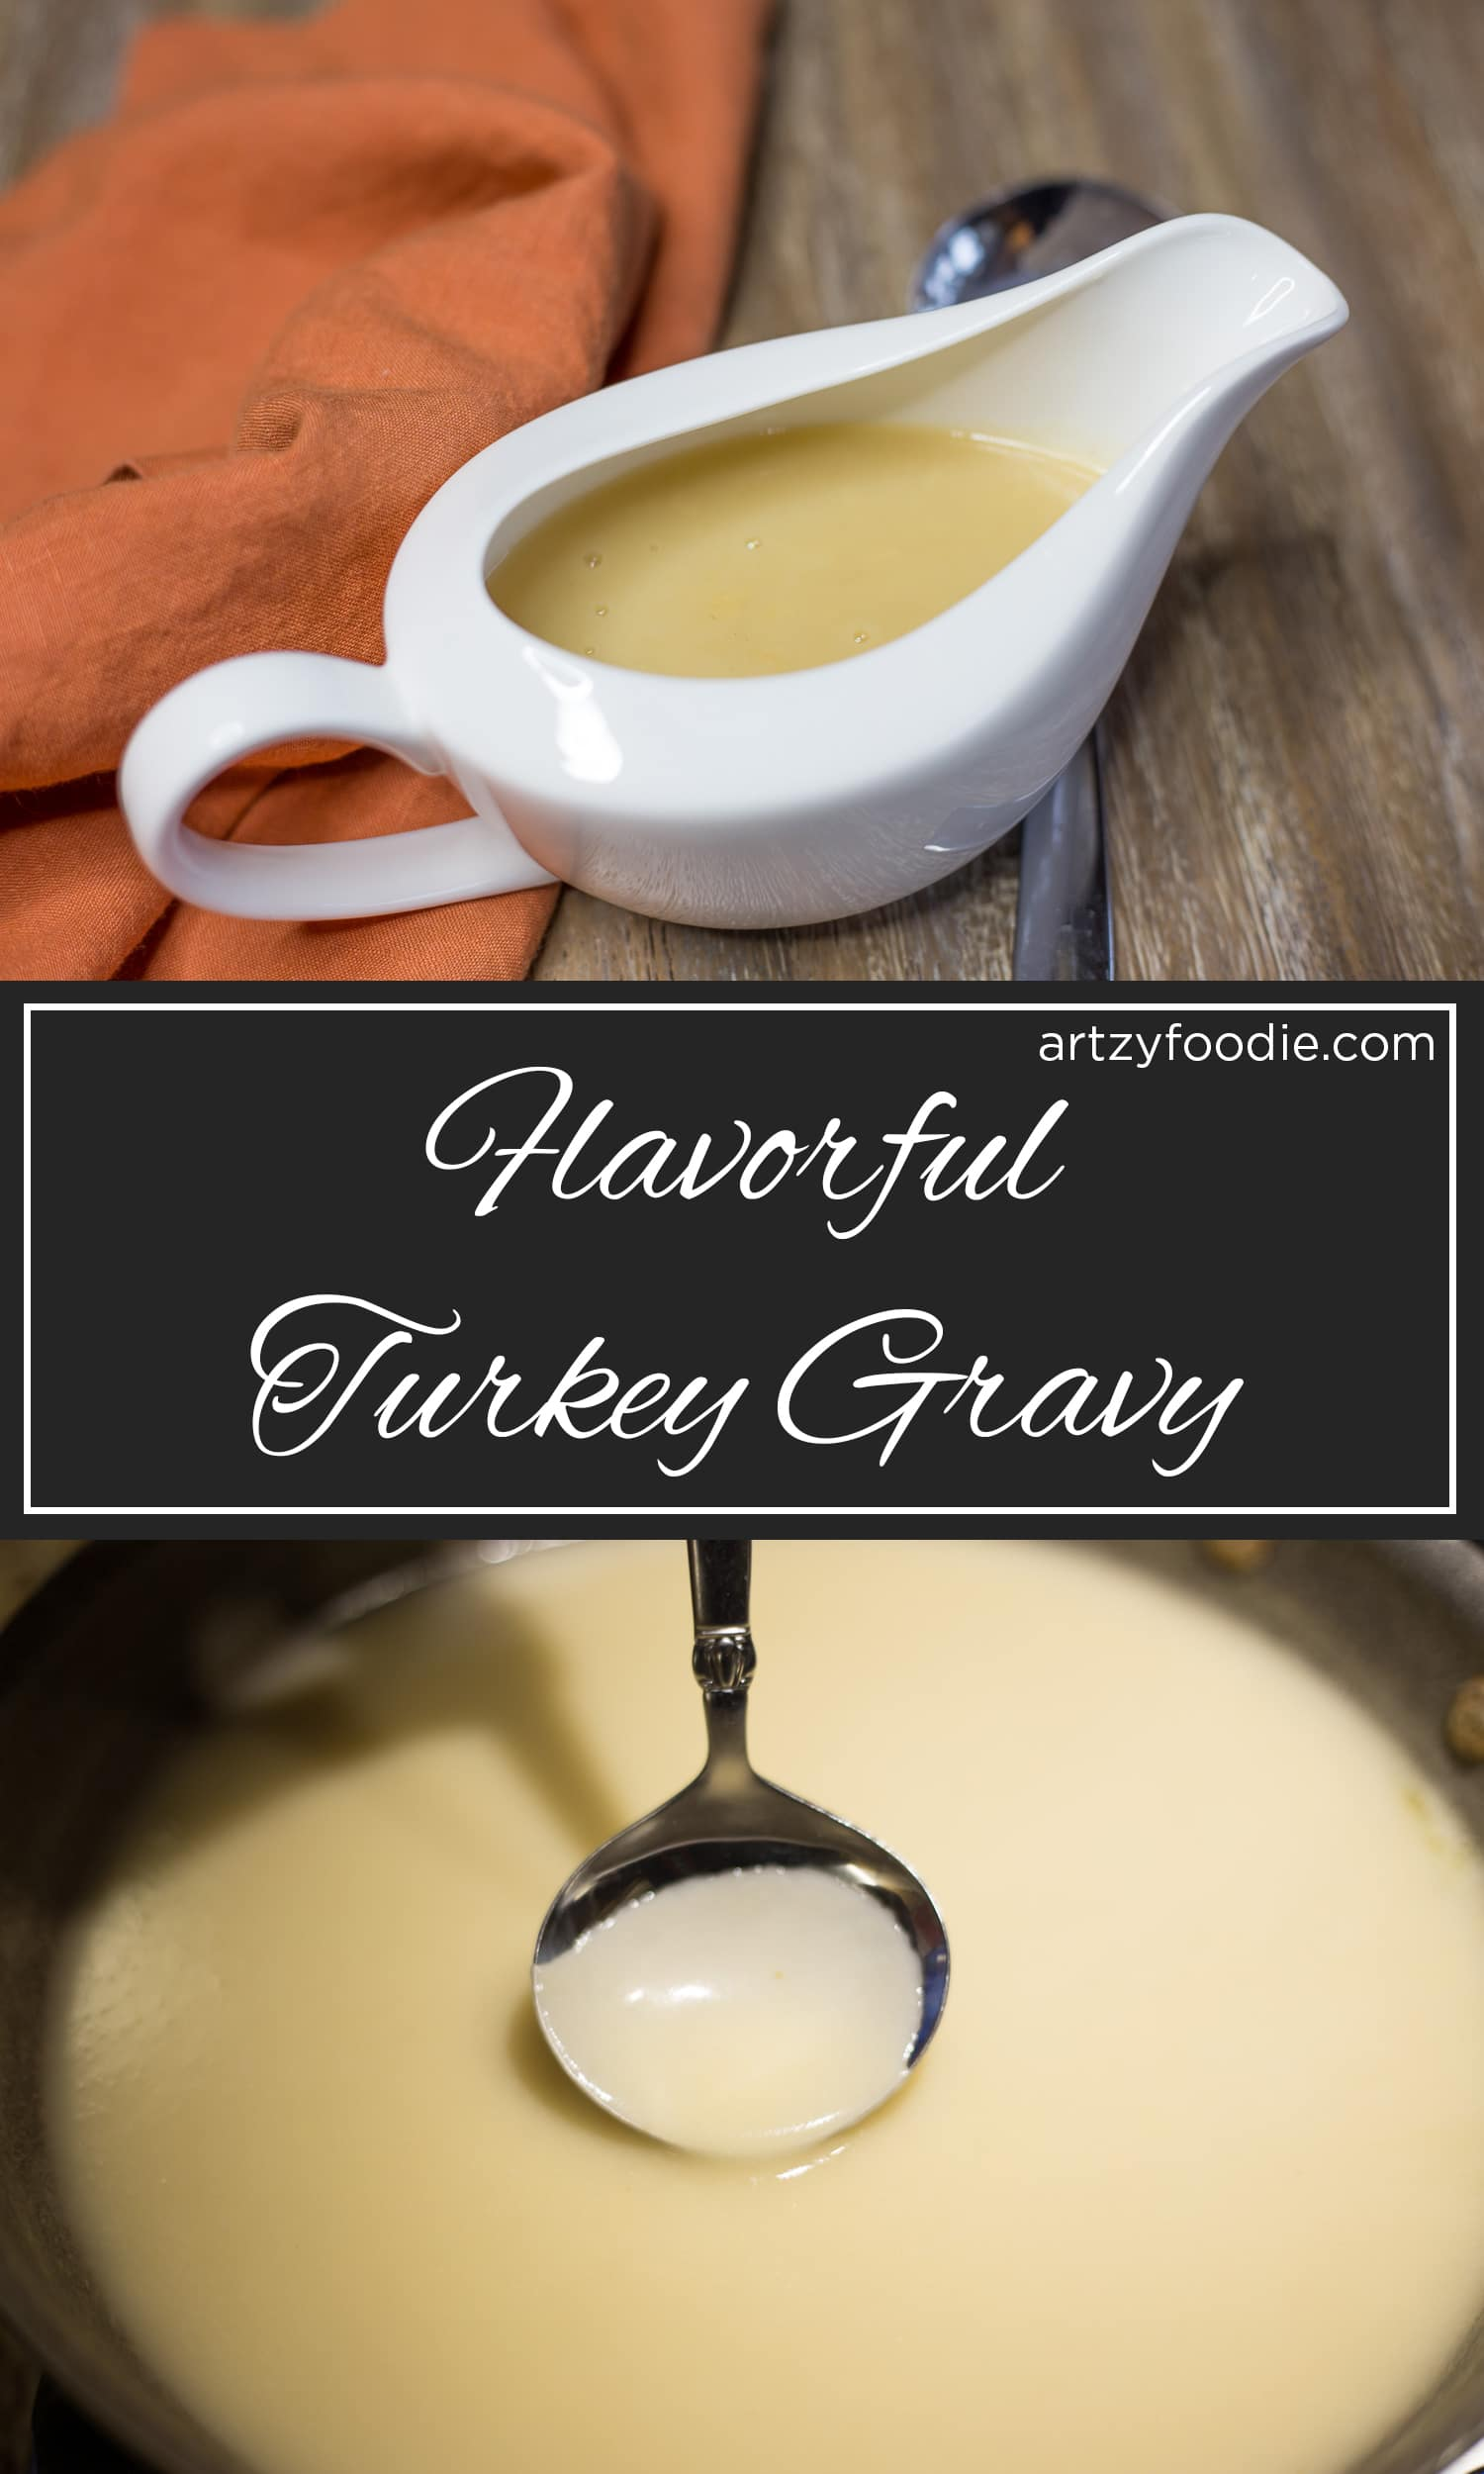 This gravy made with turkey drippings and turkey stock is like an early Christmas present for your tummy (and your taters)! |artzy foodie.com|